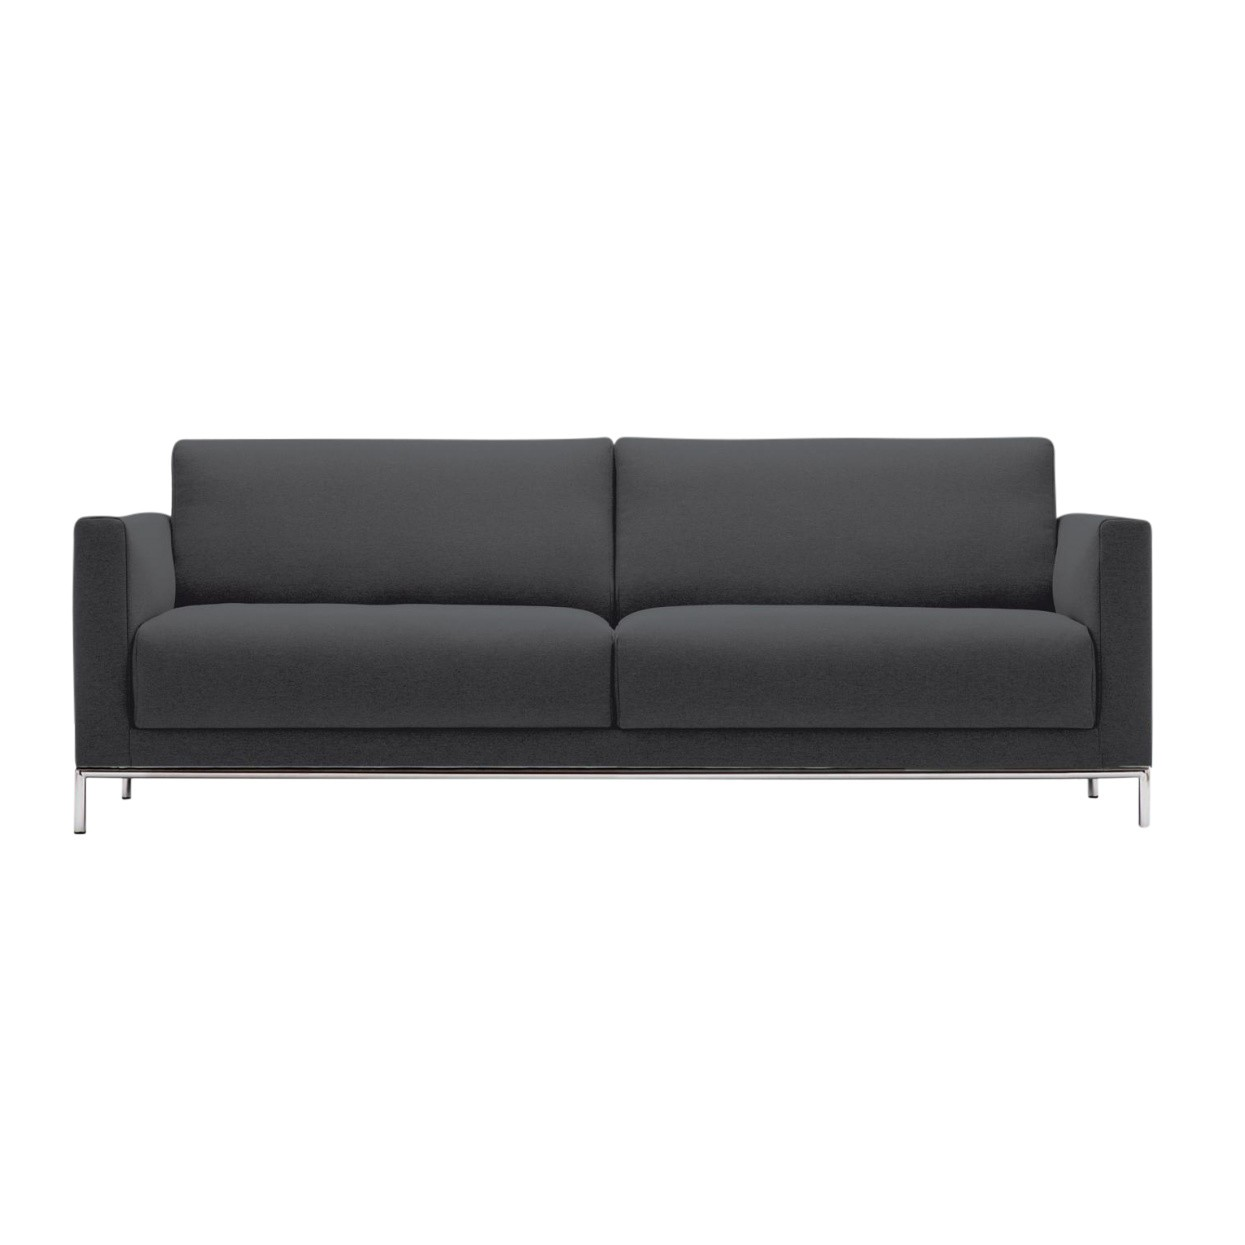 Rolf Benz Couch Freistil 141 3 Seater Sofa Frame Chrome